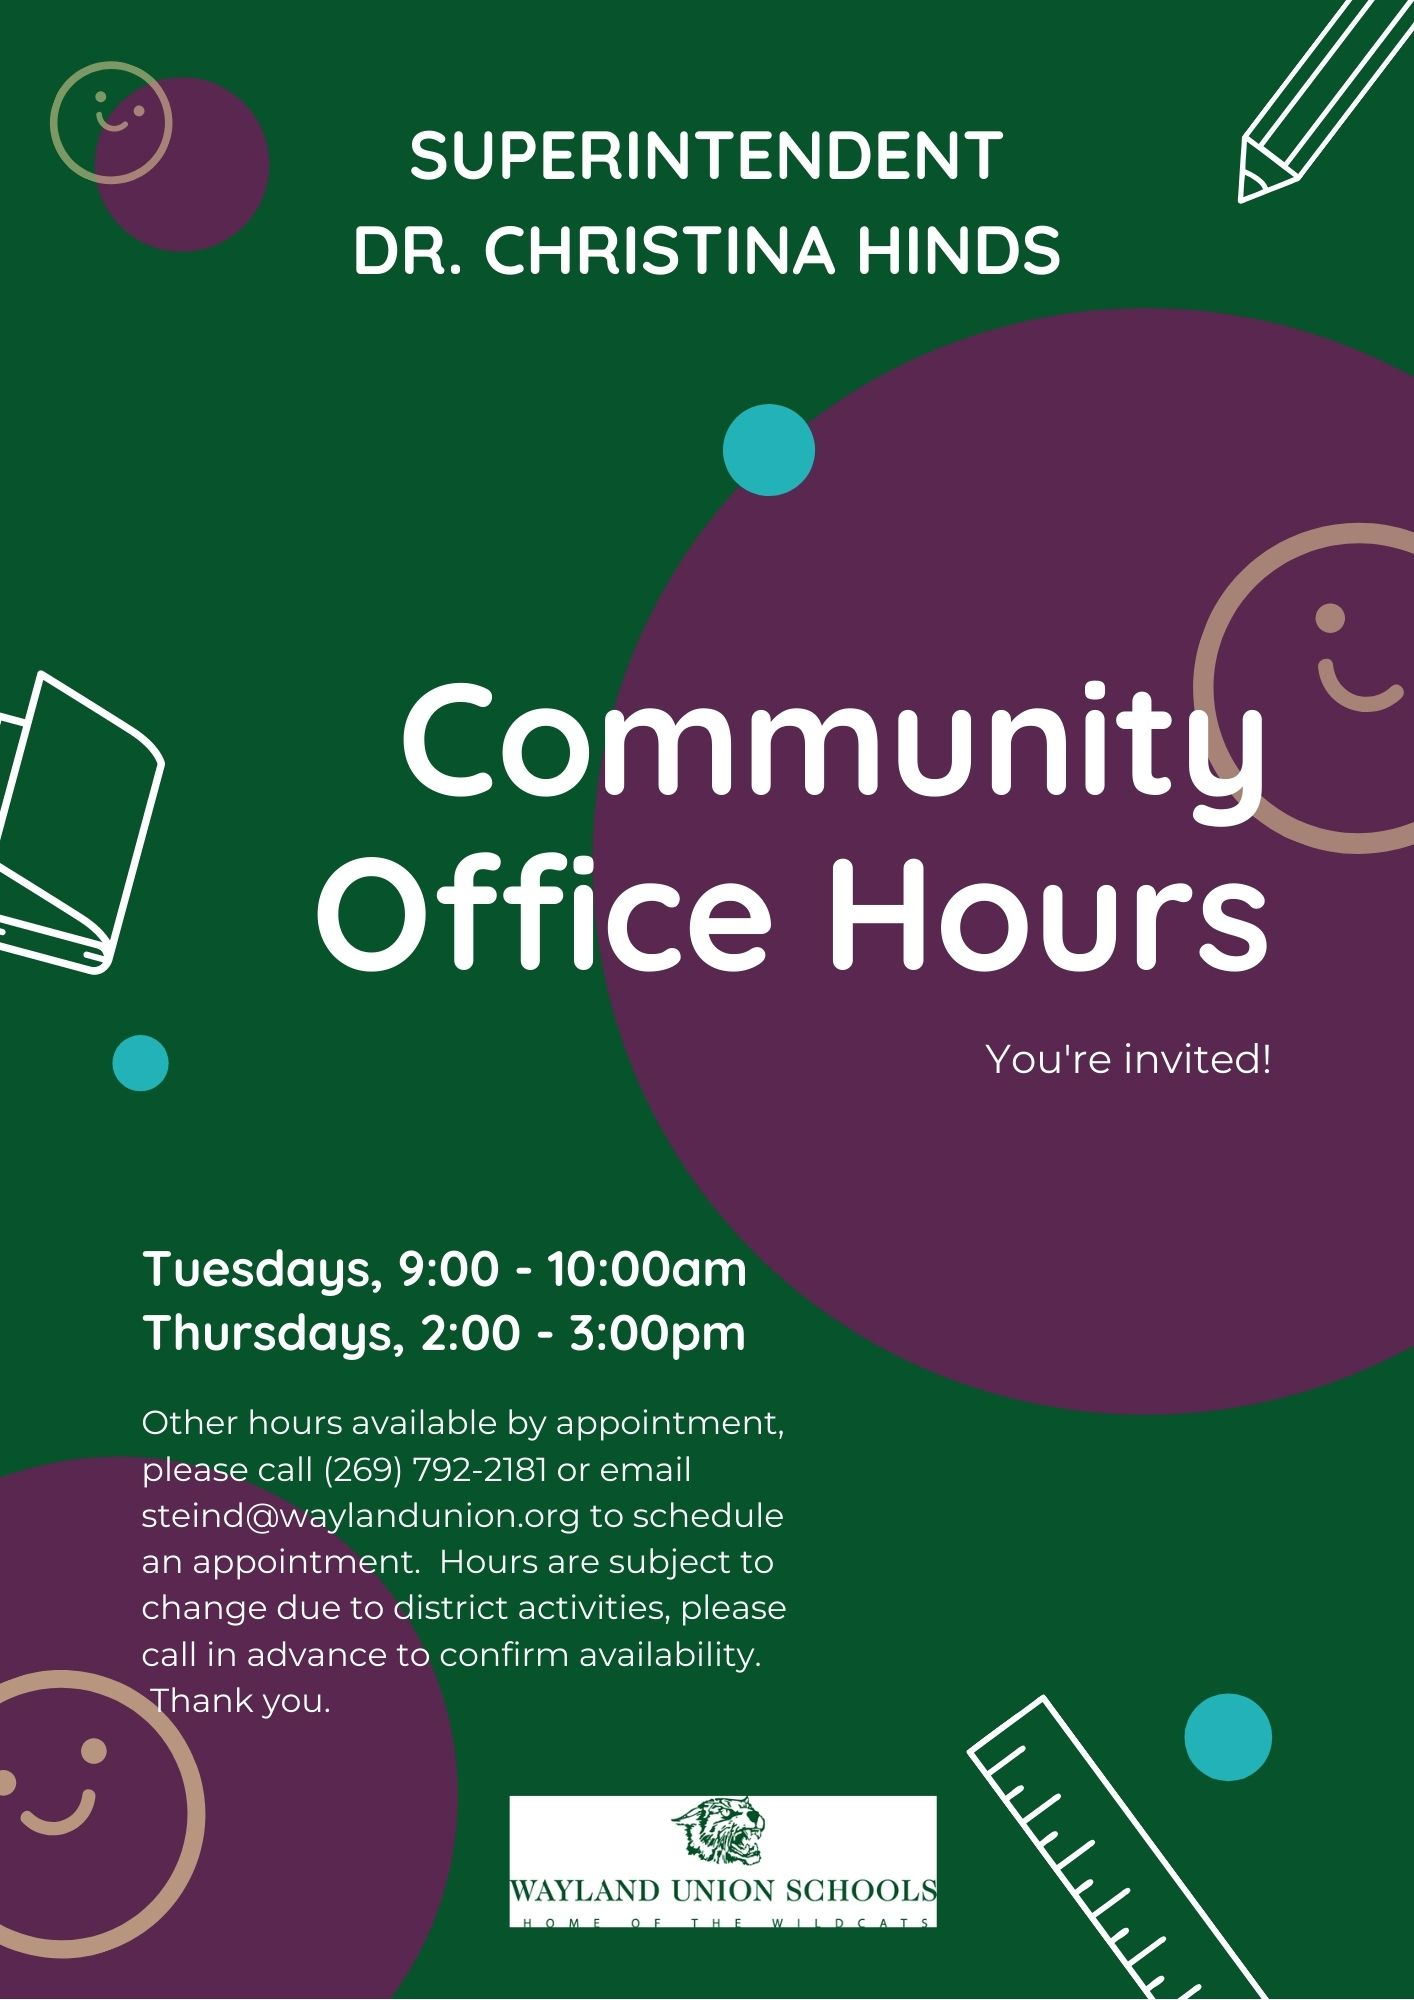 Community Office Hours info